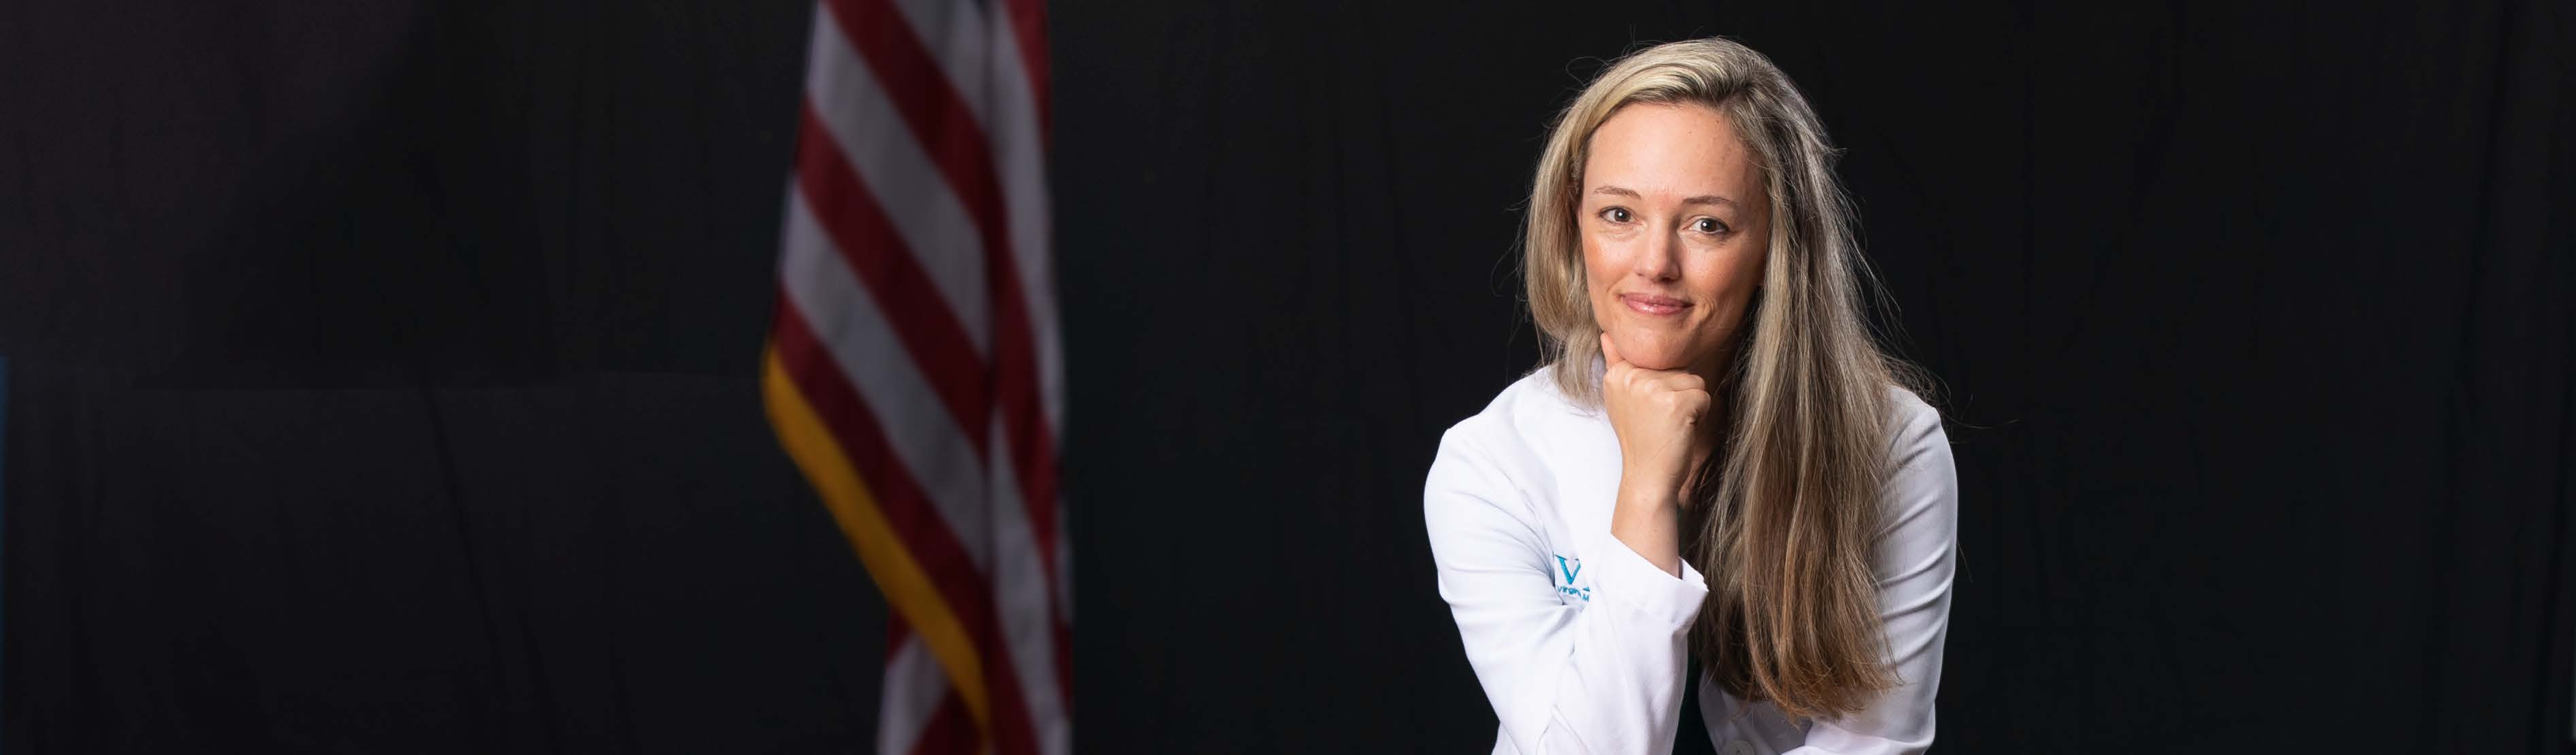 Dr. Brooke Hooper smiles at the camera and stands confidently in her white coat with the American flag out of focus behind her.